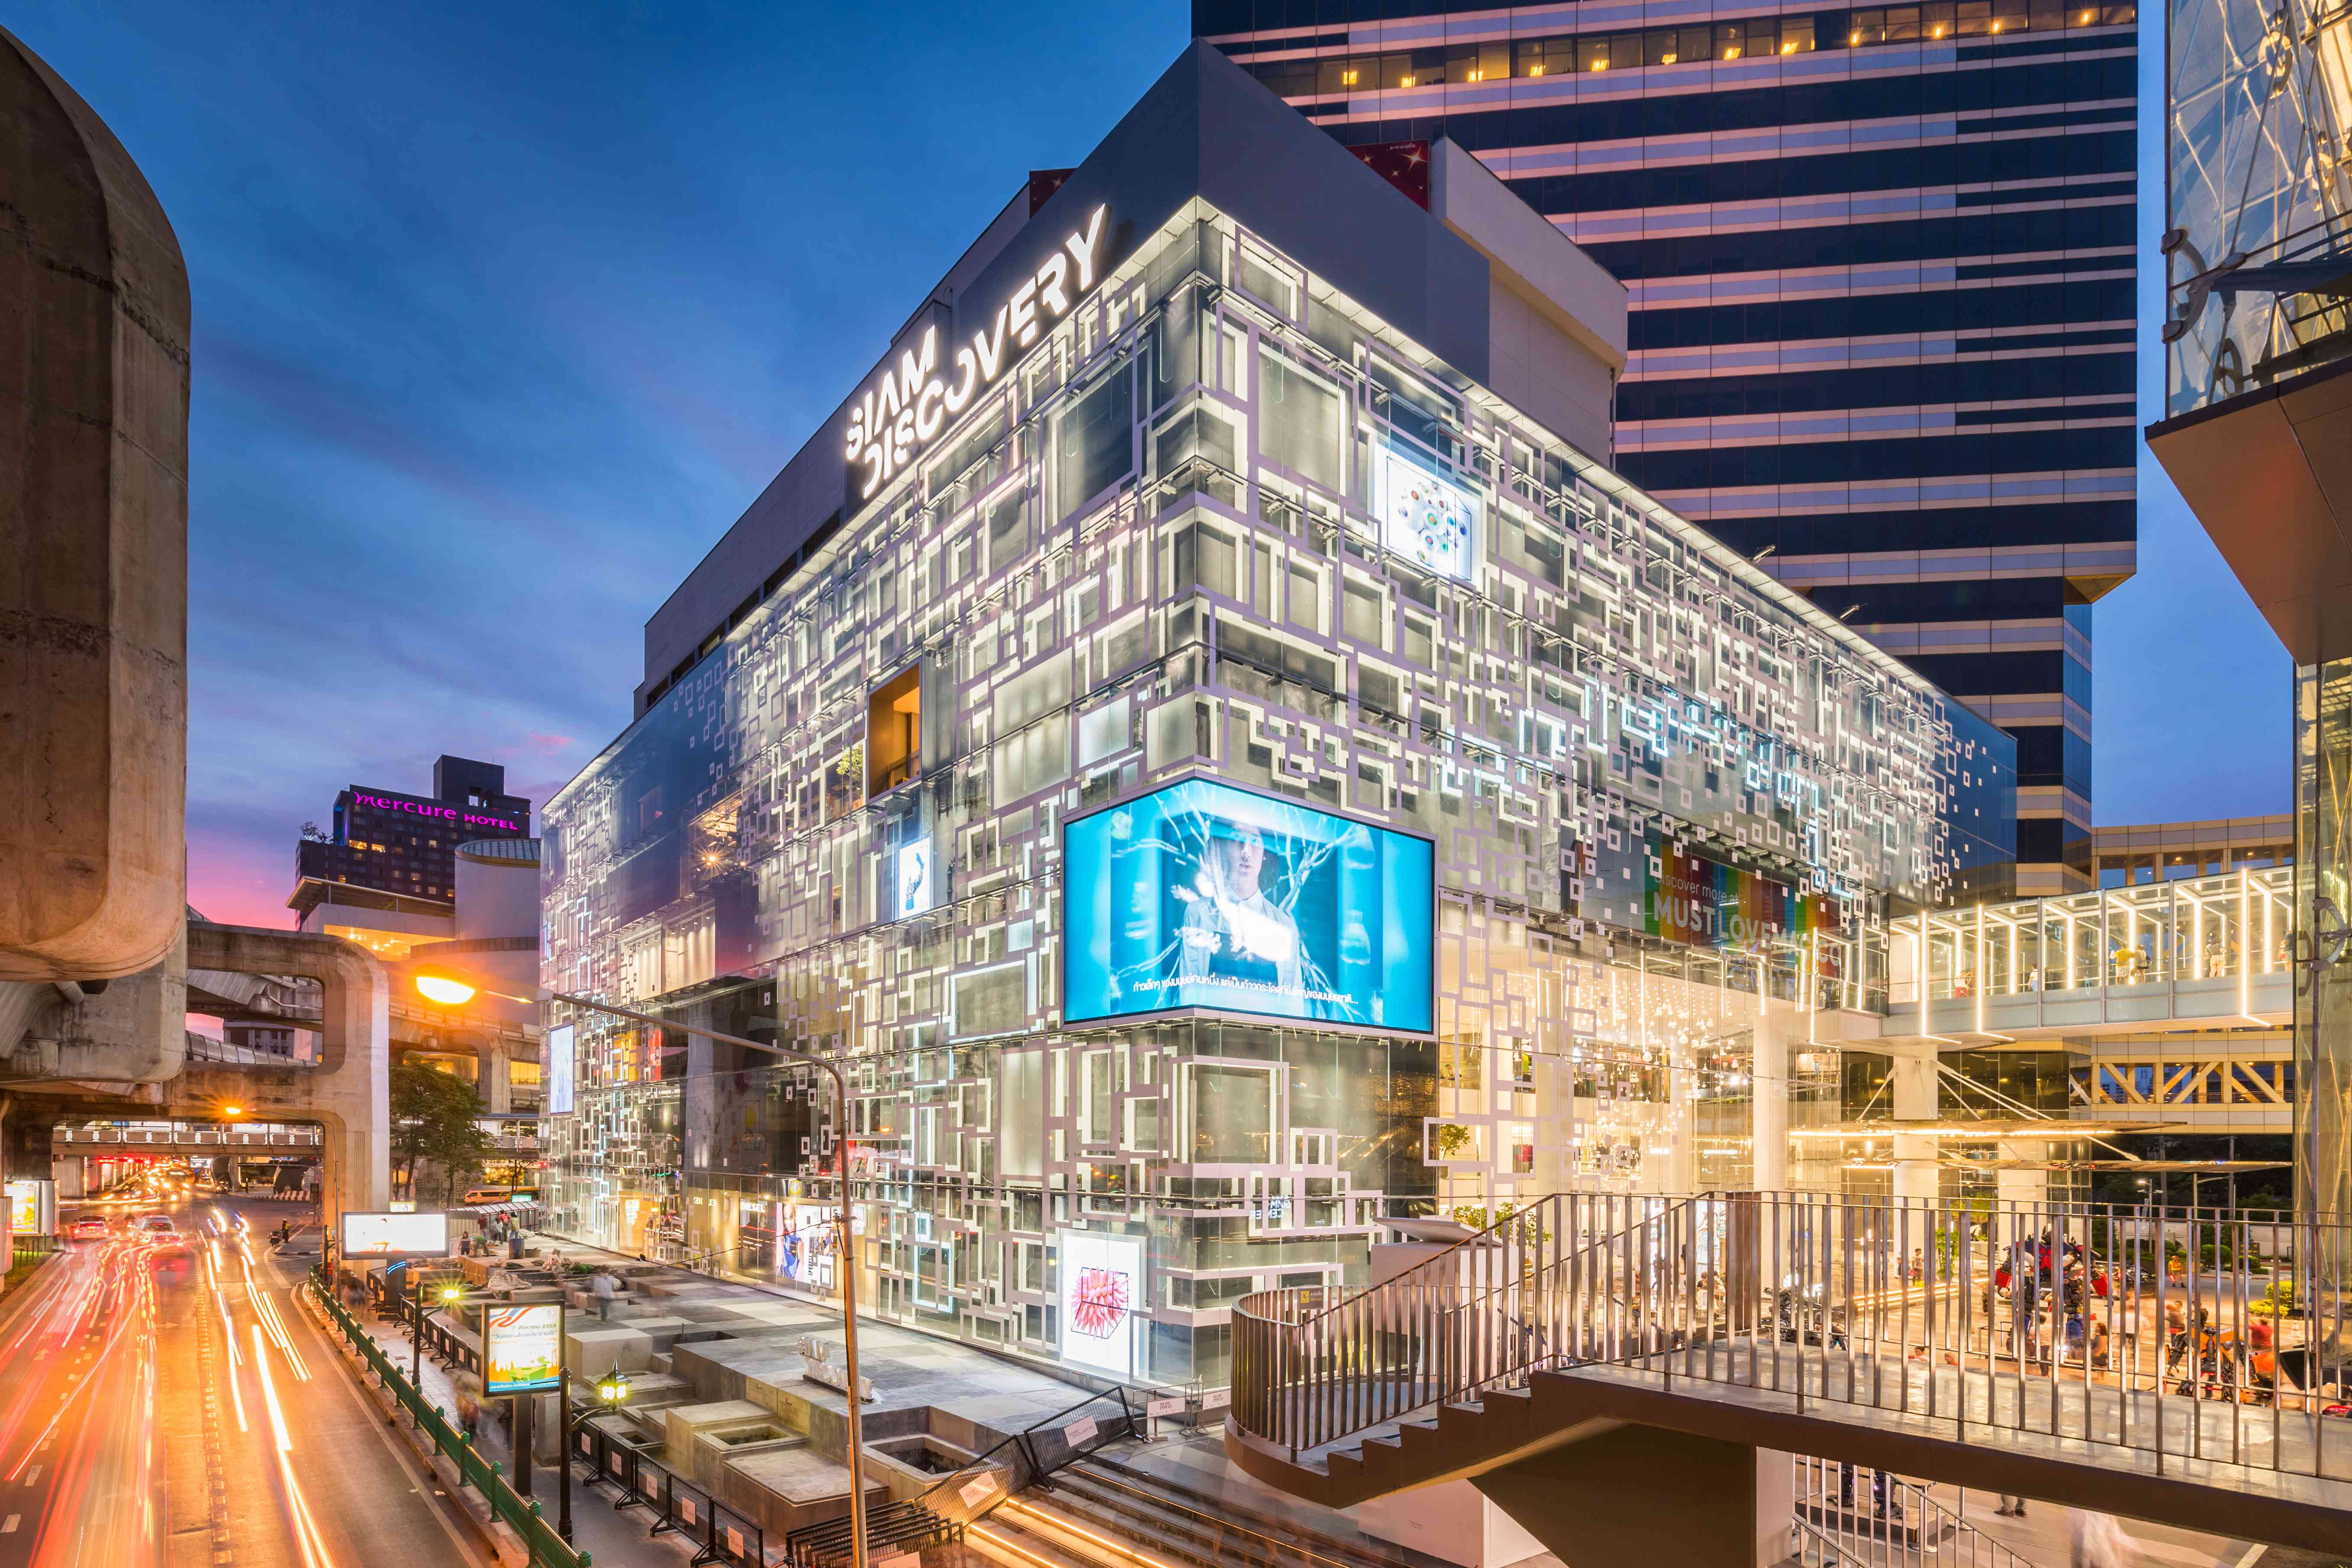 Outside of the Siam Discovery mall in Bangkok at night